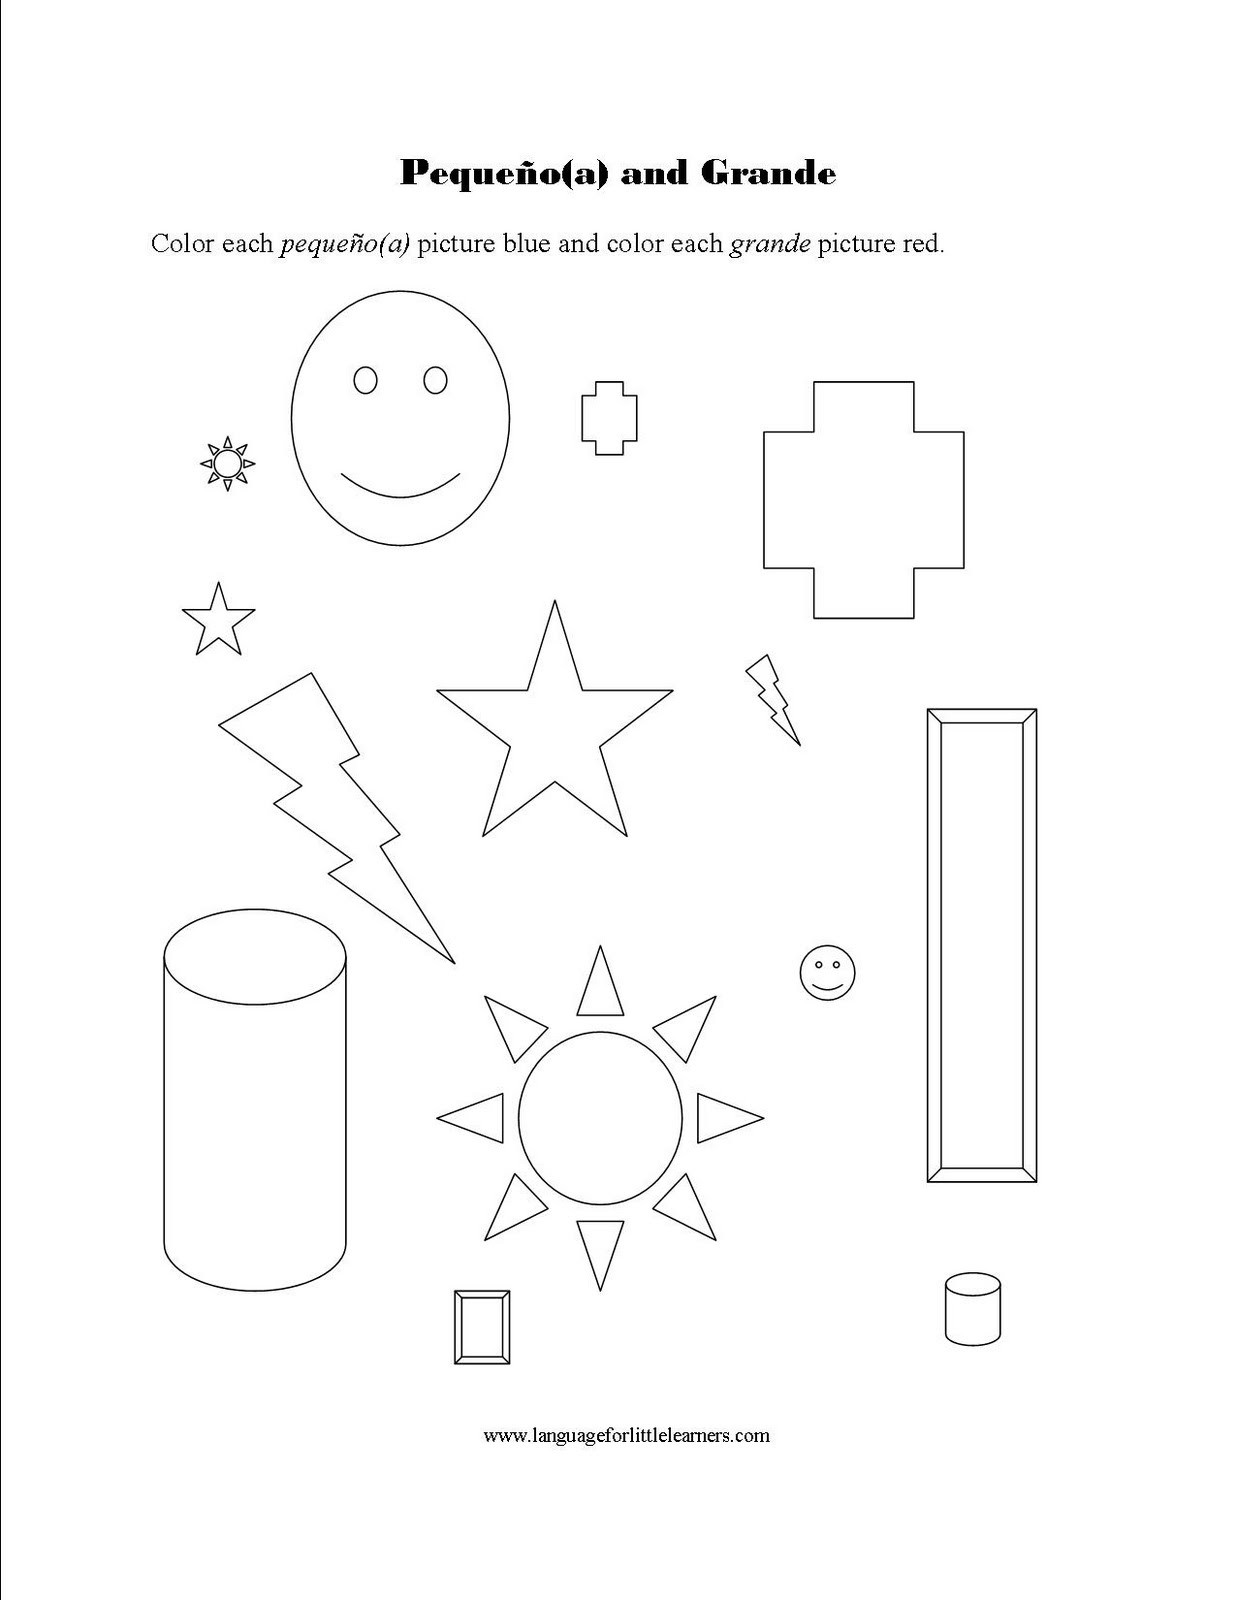 Language For Little Learners Small And Big Worksheet In